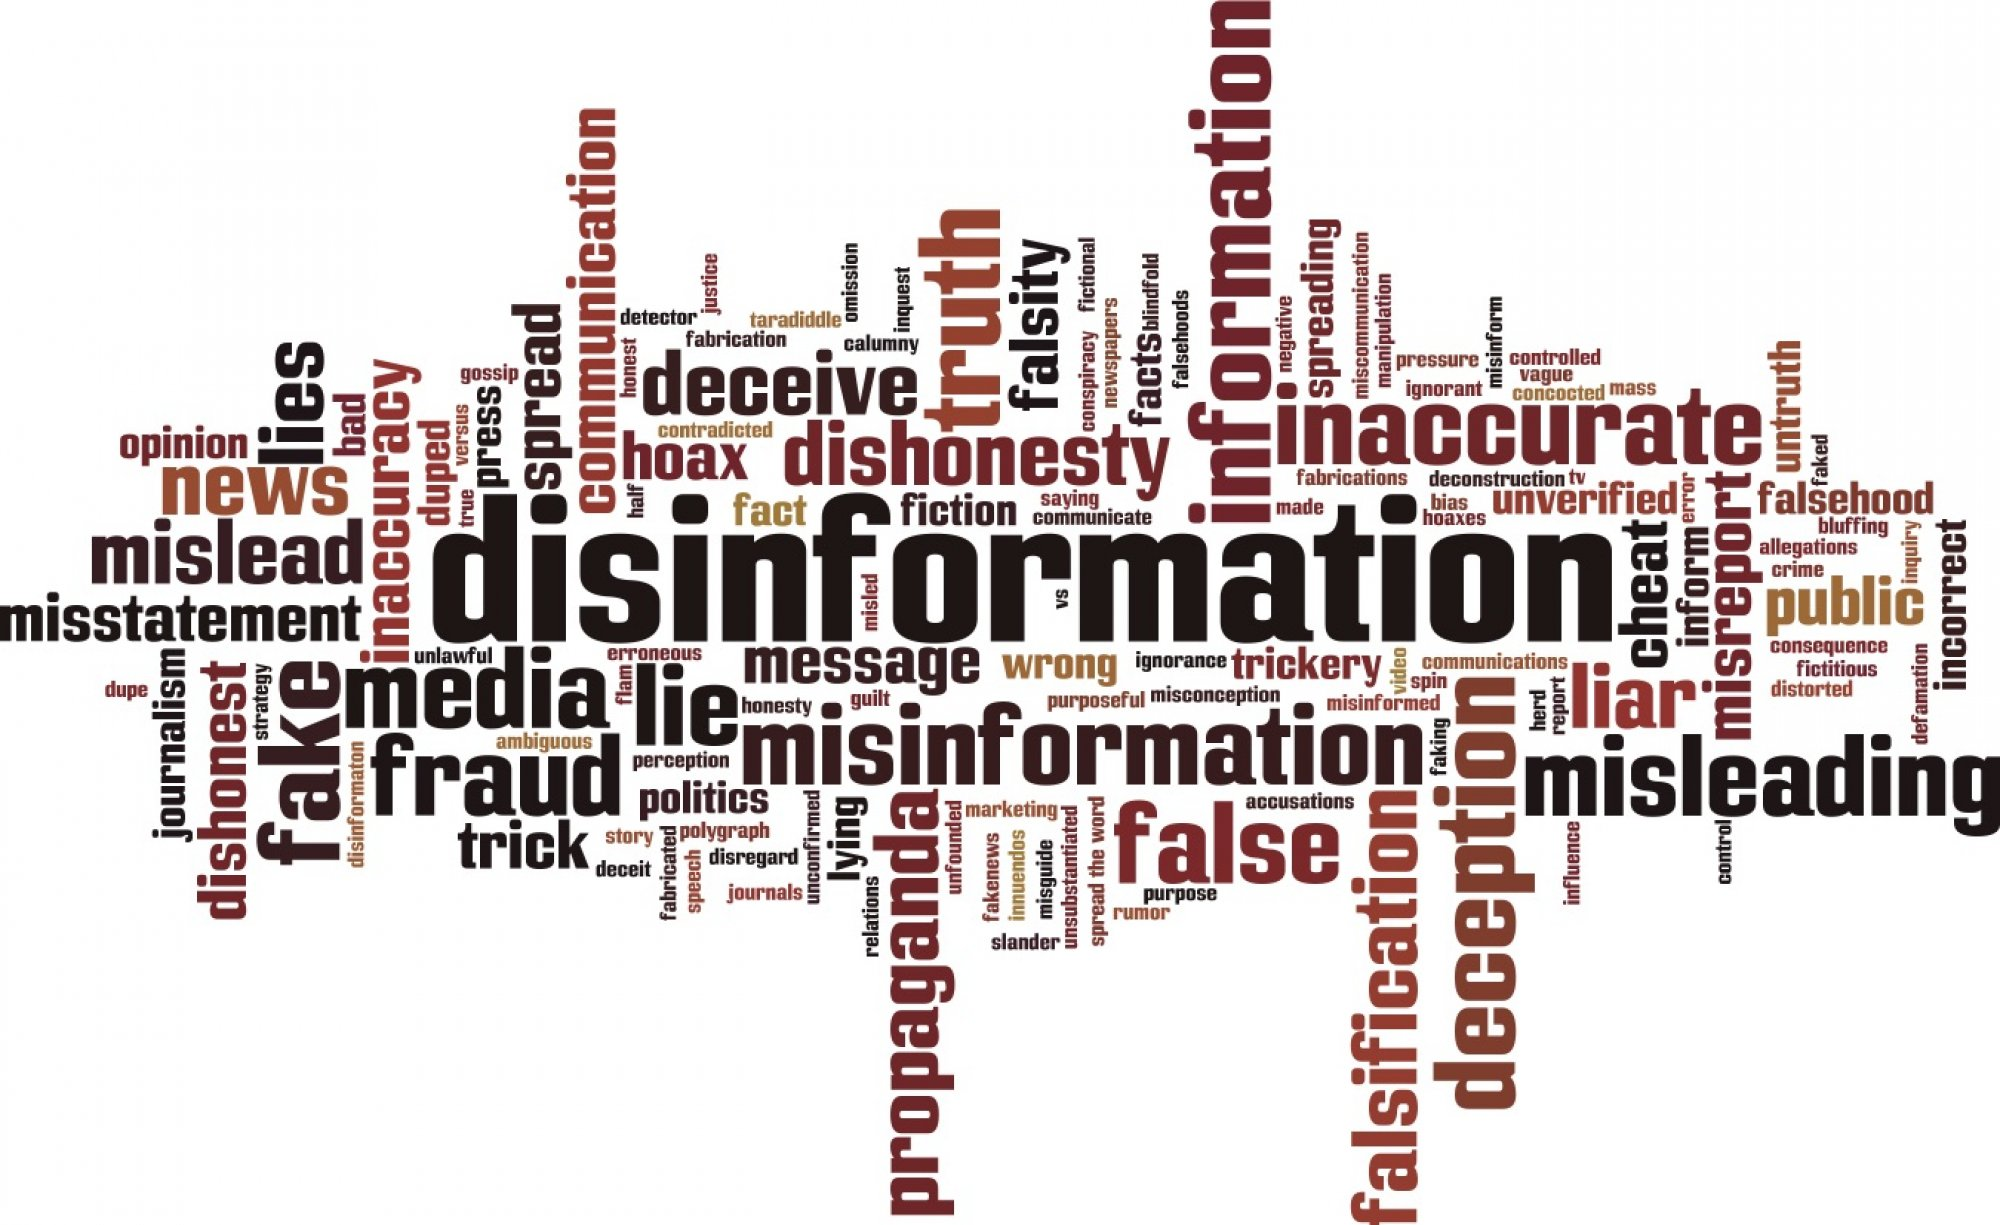 Disinformation Campaigns on Social Media